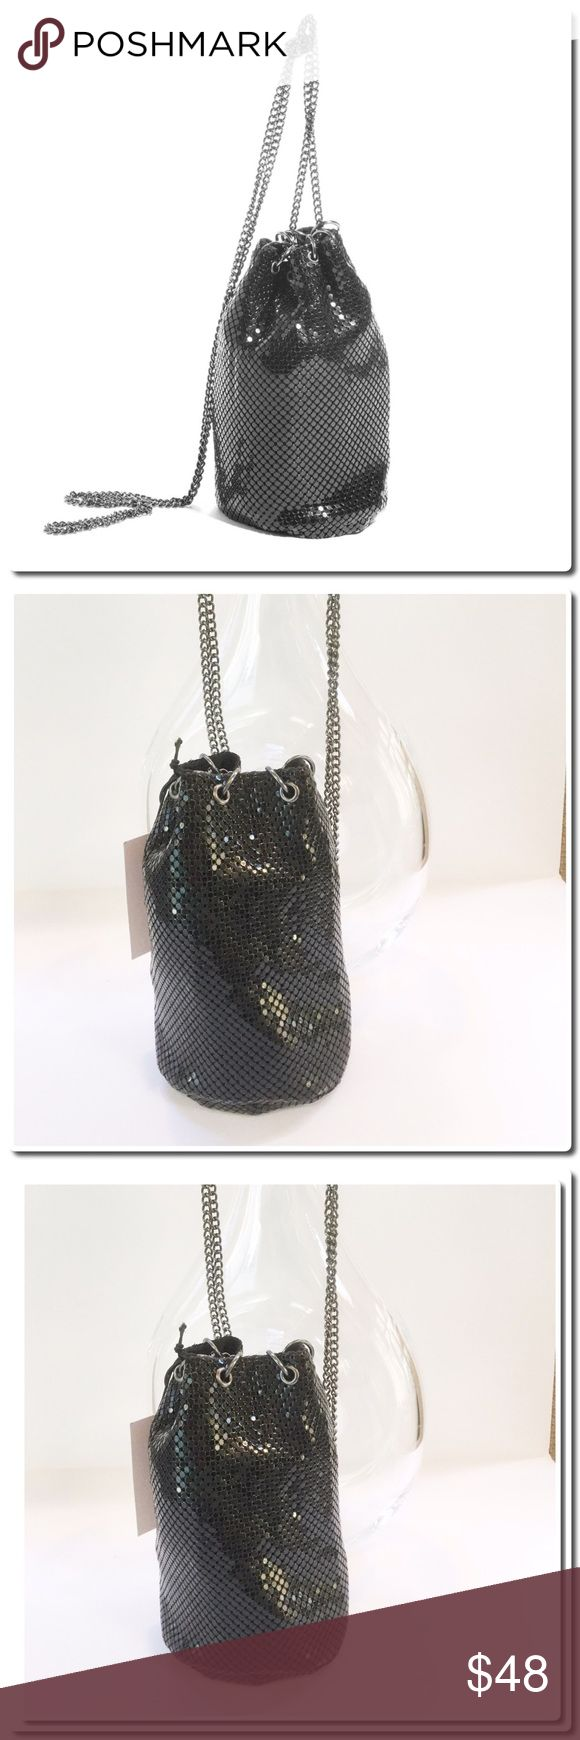 """NWOT Whiting and Davis Mini Metal Crossbody Unique and perfect to fit into your nightlife, this mini metal crossbody bag by Whiting & Davis lends a metallic outer, chain link details, and overall simple yet sassy aesthetic. Mini metal crossbody purse Chain link details Black Measures approximately 6""""l x 4 ½""""w x 2 ½""""d Whiting  and Davis Bags Mini Bags"""